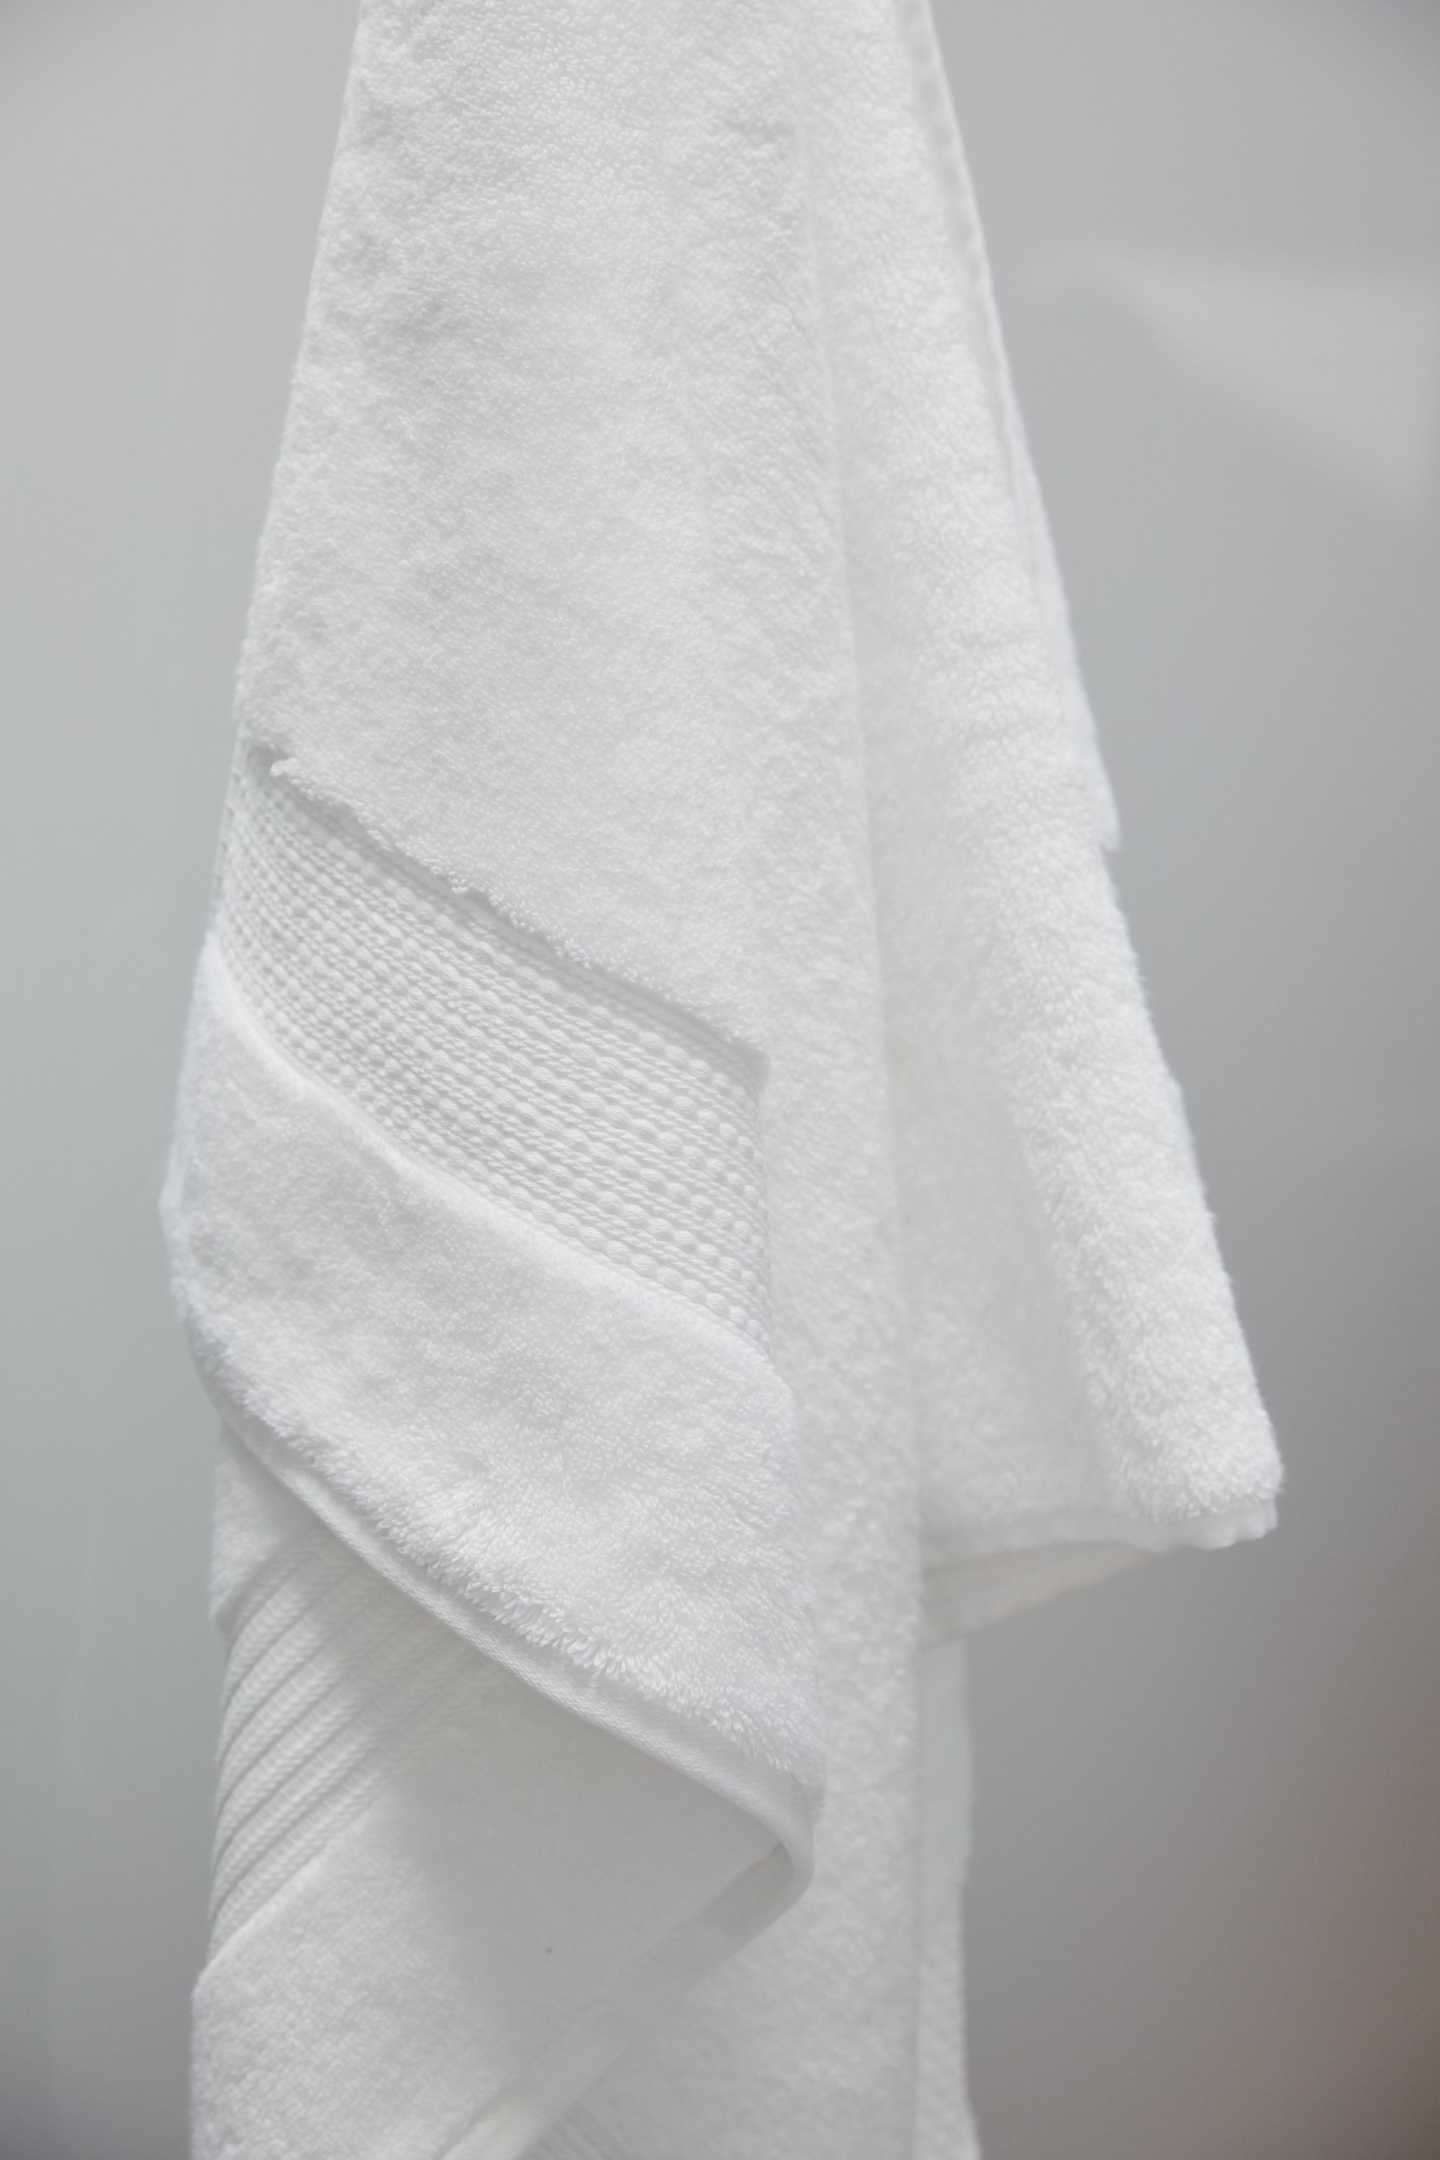 Turkish Quick-Dry Bath Towels (Set of 2) - White - 3